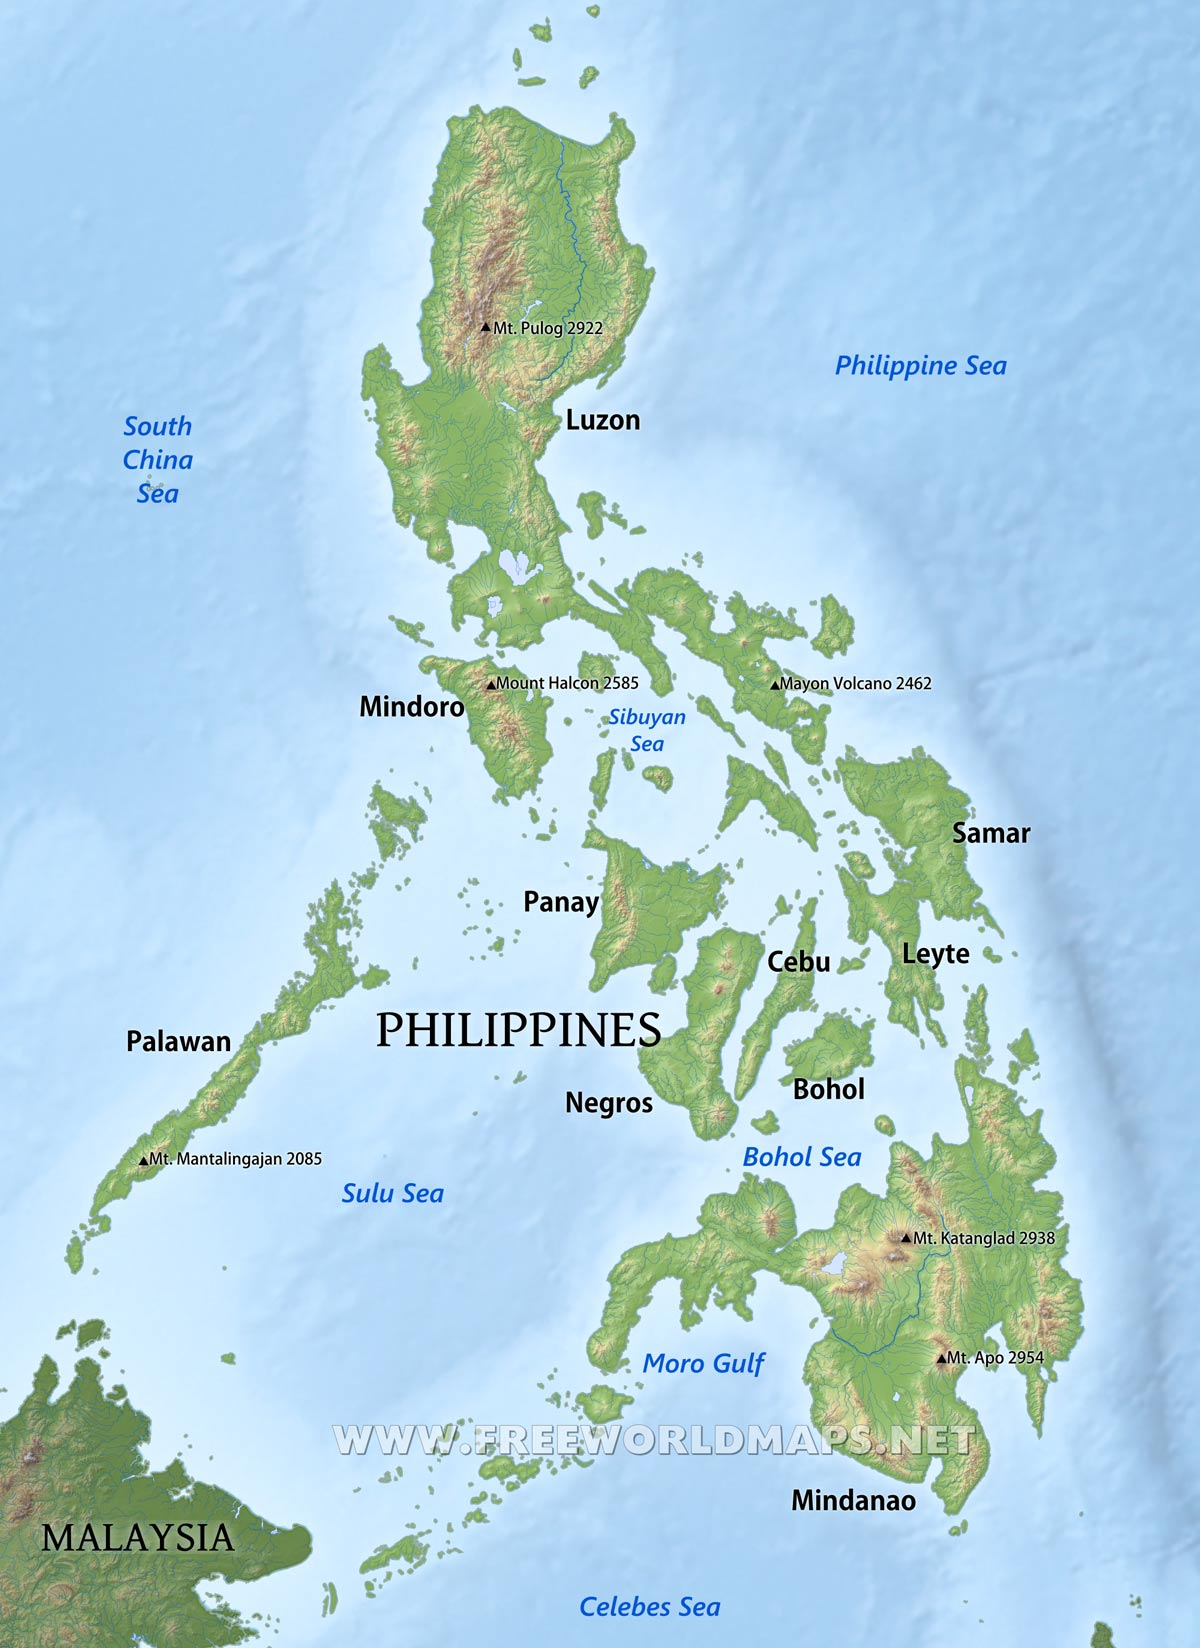 Philippines Physical Map on world map including romania, world map including jordan, world map including florida, world map including dubai, world map including islands, world map including all countries, world map including malaysia, world map including germany, world map including aruba, world map including dominican republic, world map including china, world map including syria, world map including chile, world map including micronesia, world map including guam, world map including egypt, world map including england, world map including italy, world map including albania, world map including hong kong,